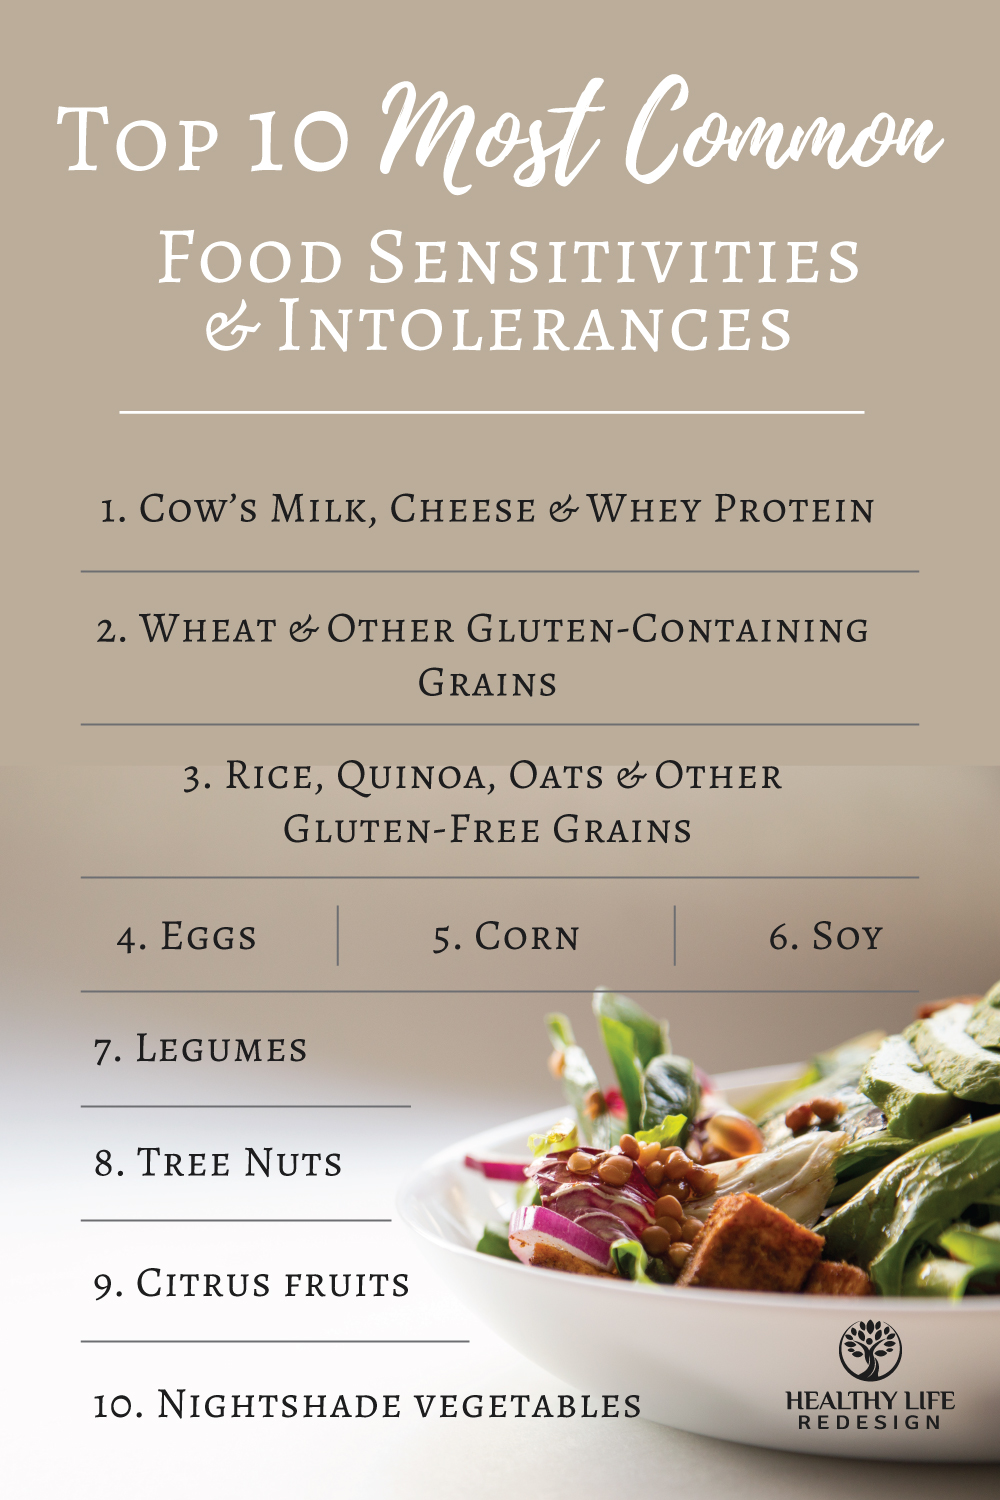 Top 10 Most Common Food Sensitivities and Intolerances